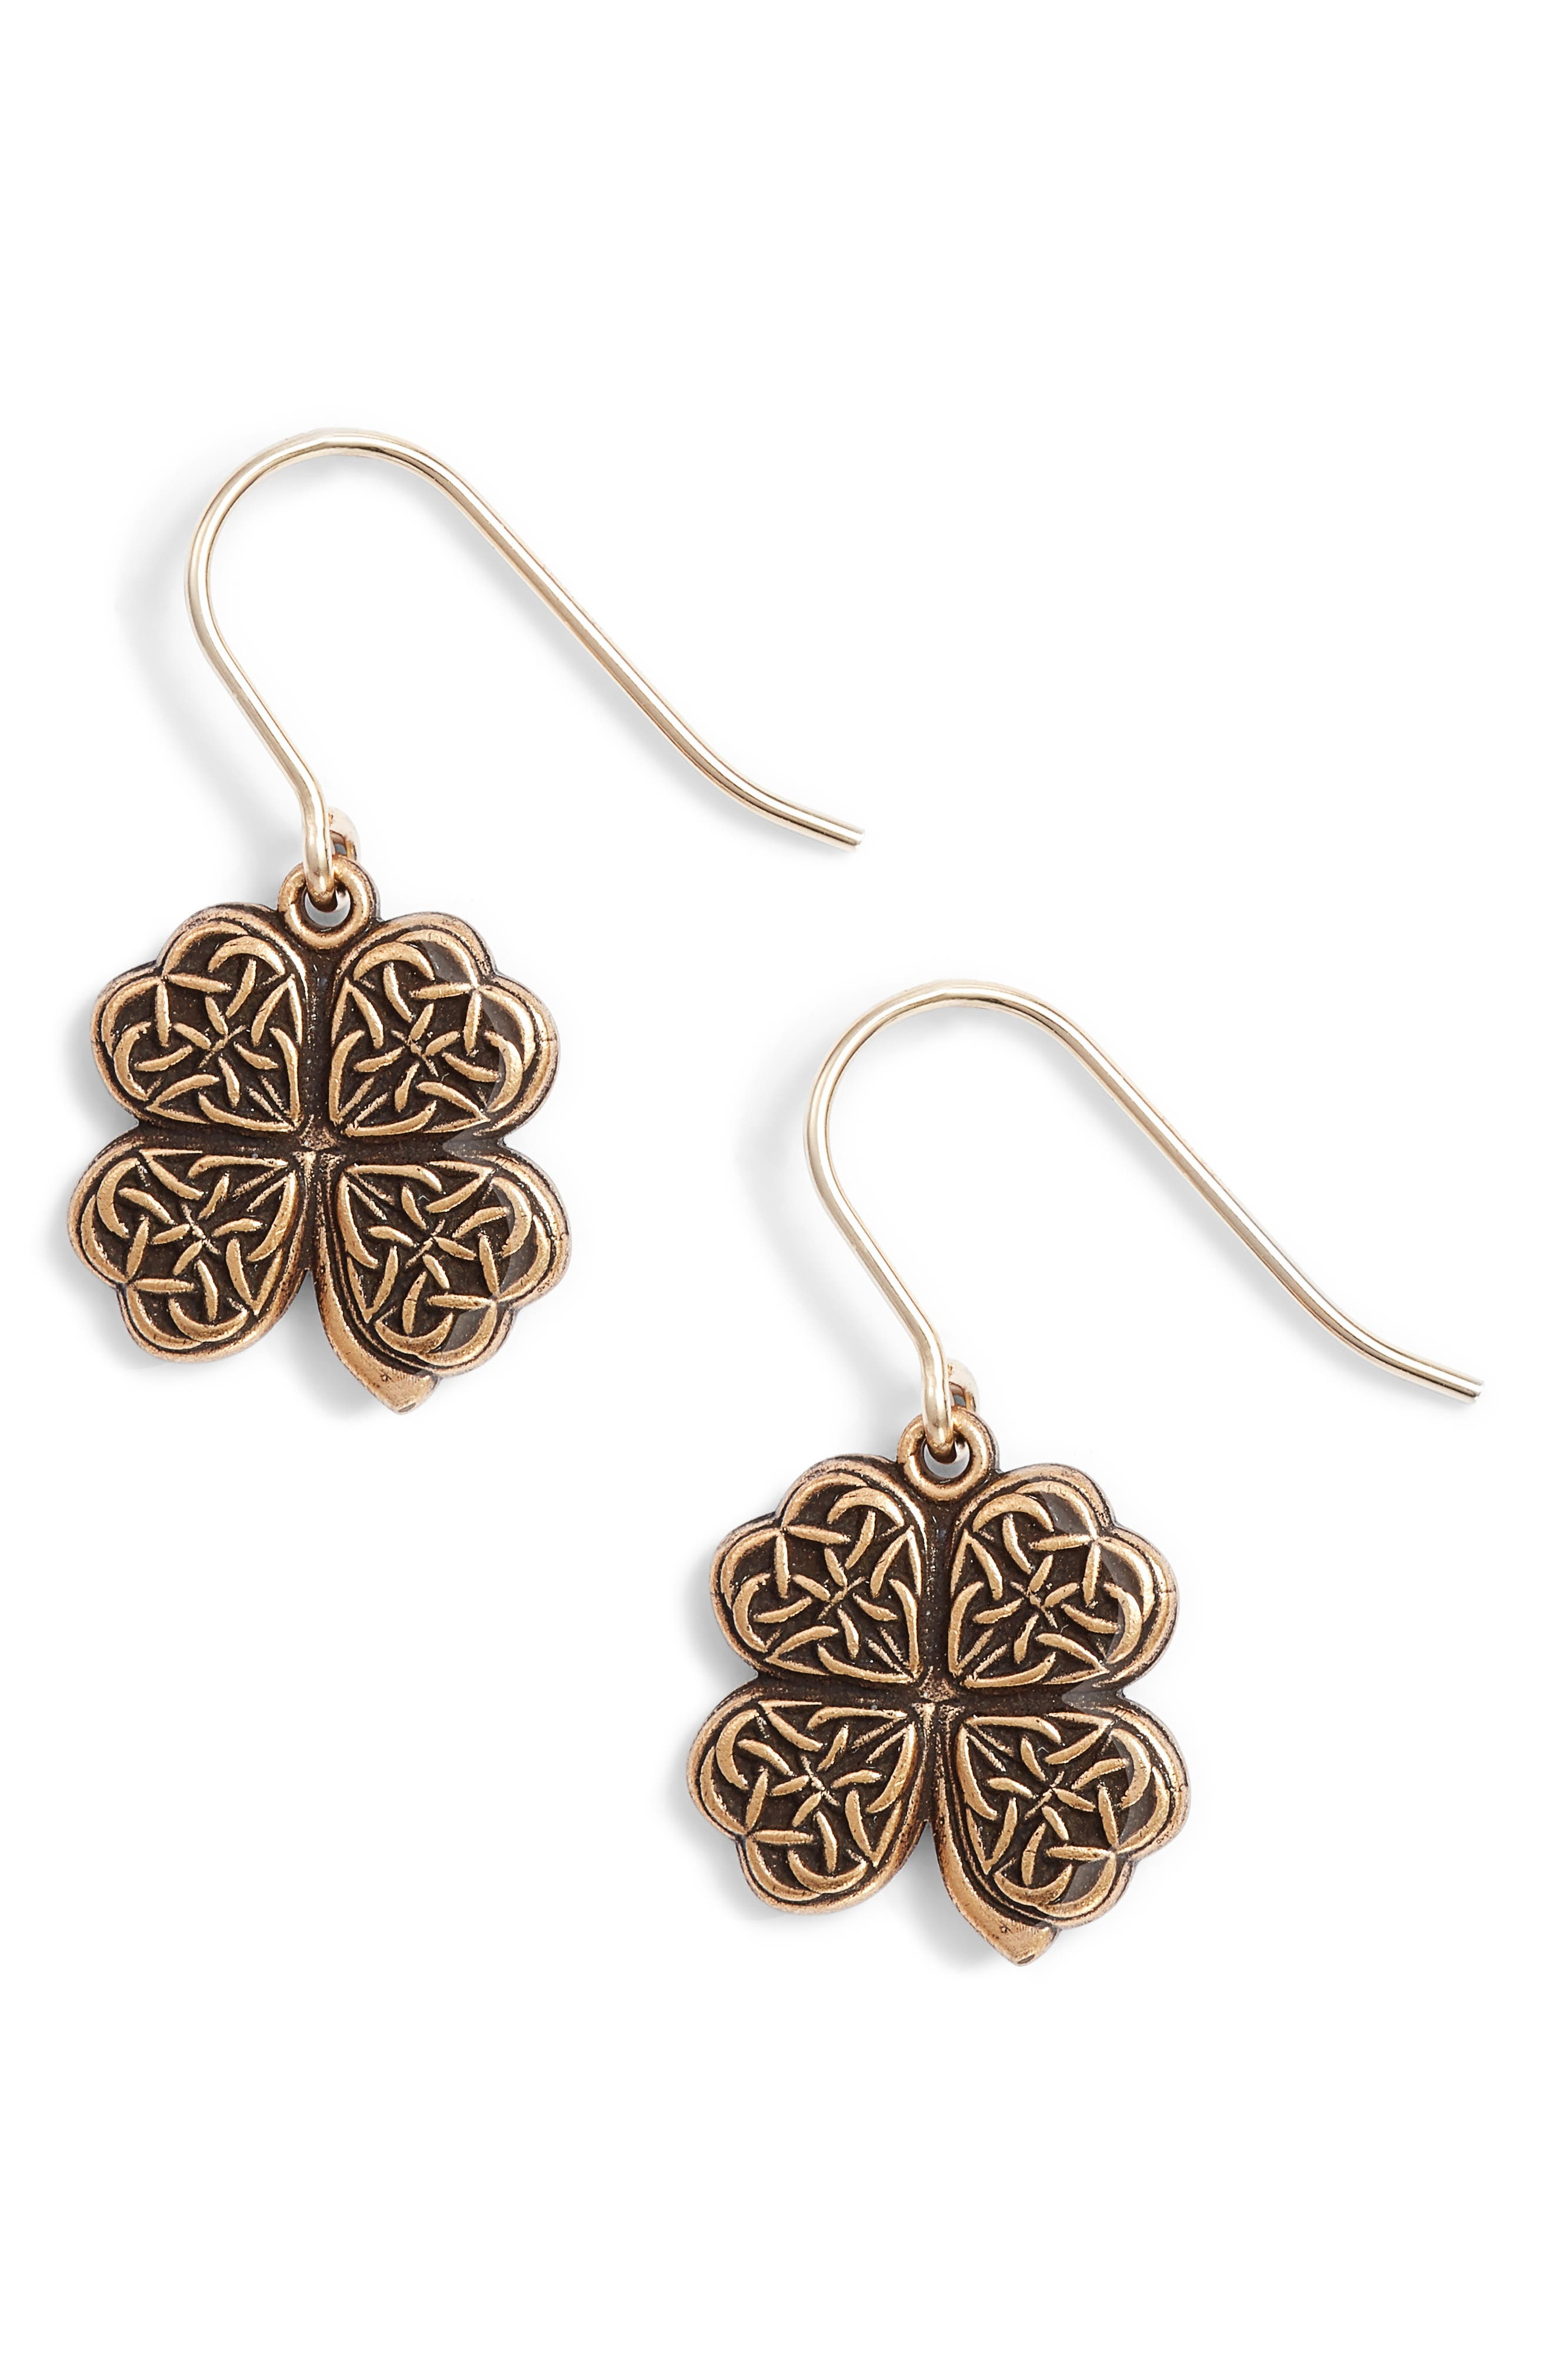 Alex and Ani Four Leaf Clover Drop Earrings